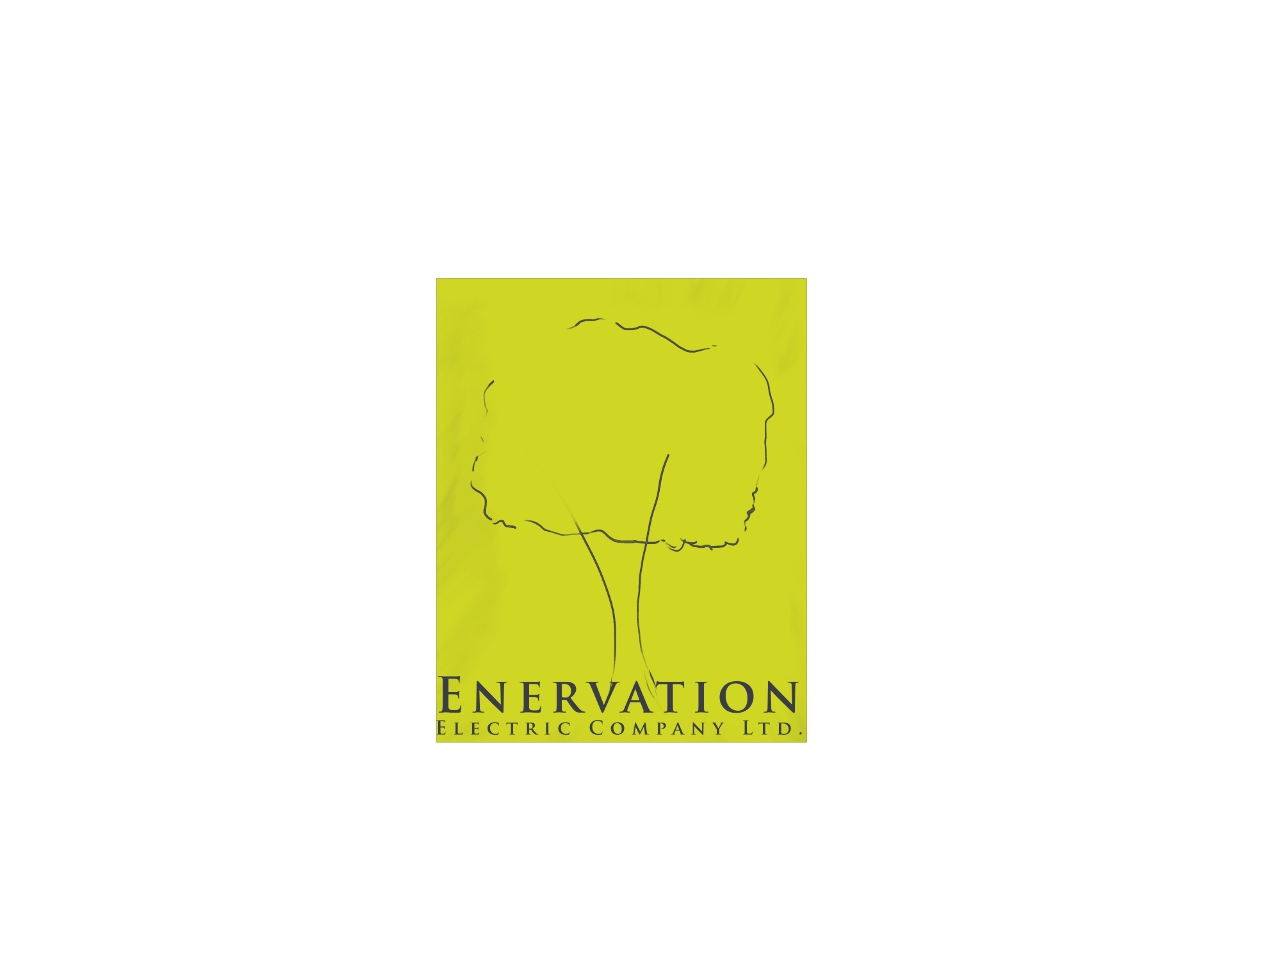 Business Card Design by Dr.Logo - Entry No. 73 in the Business Card Design Contest Enervation Logo Design.